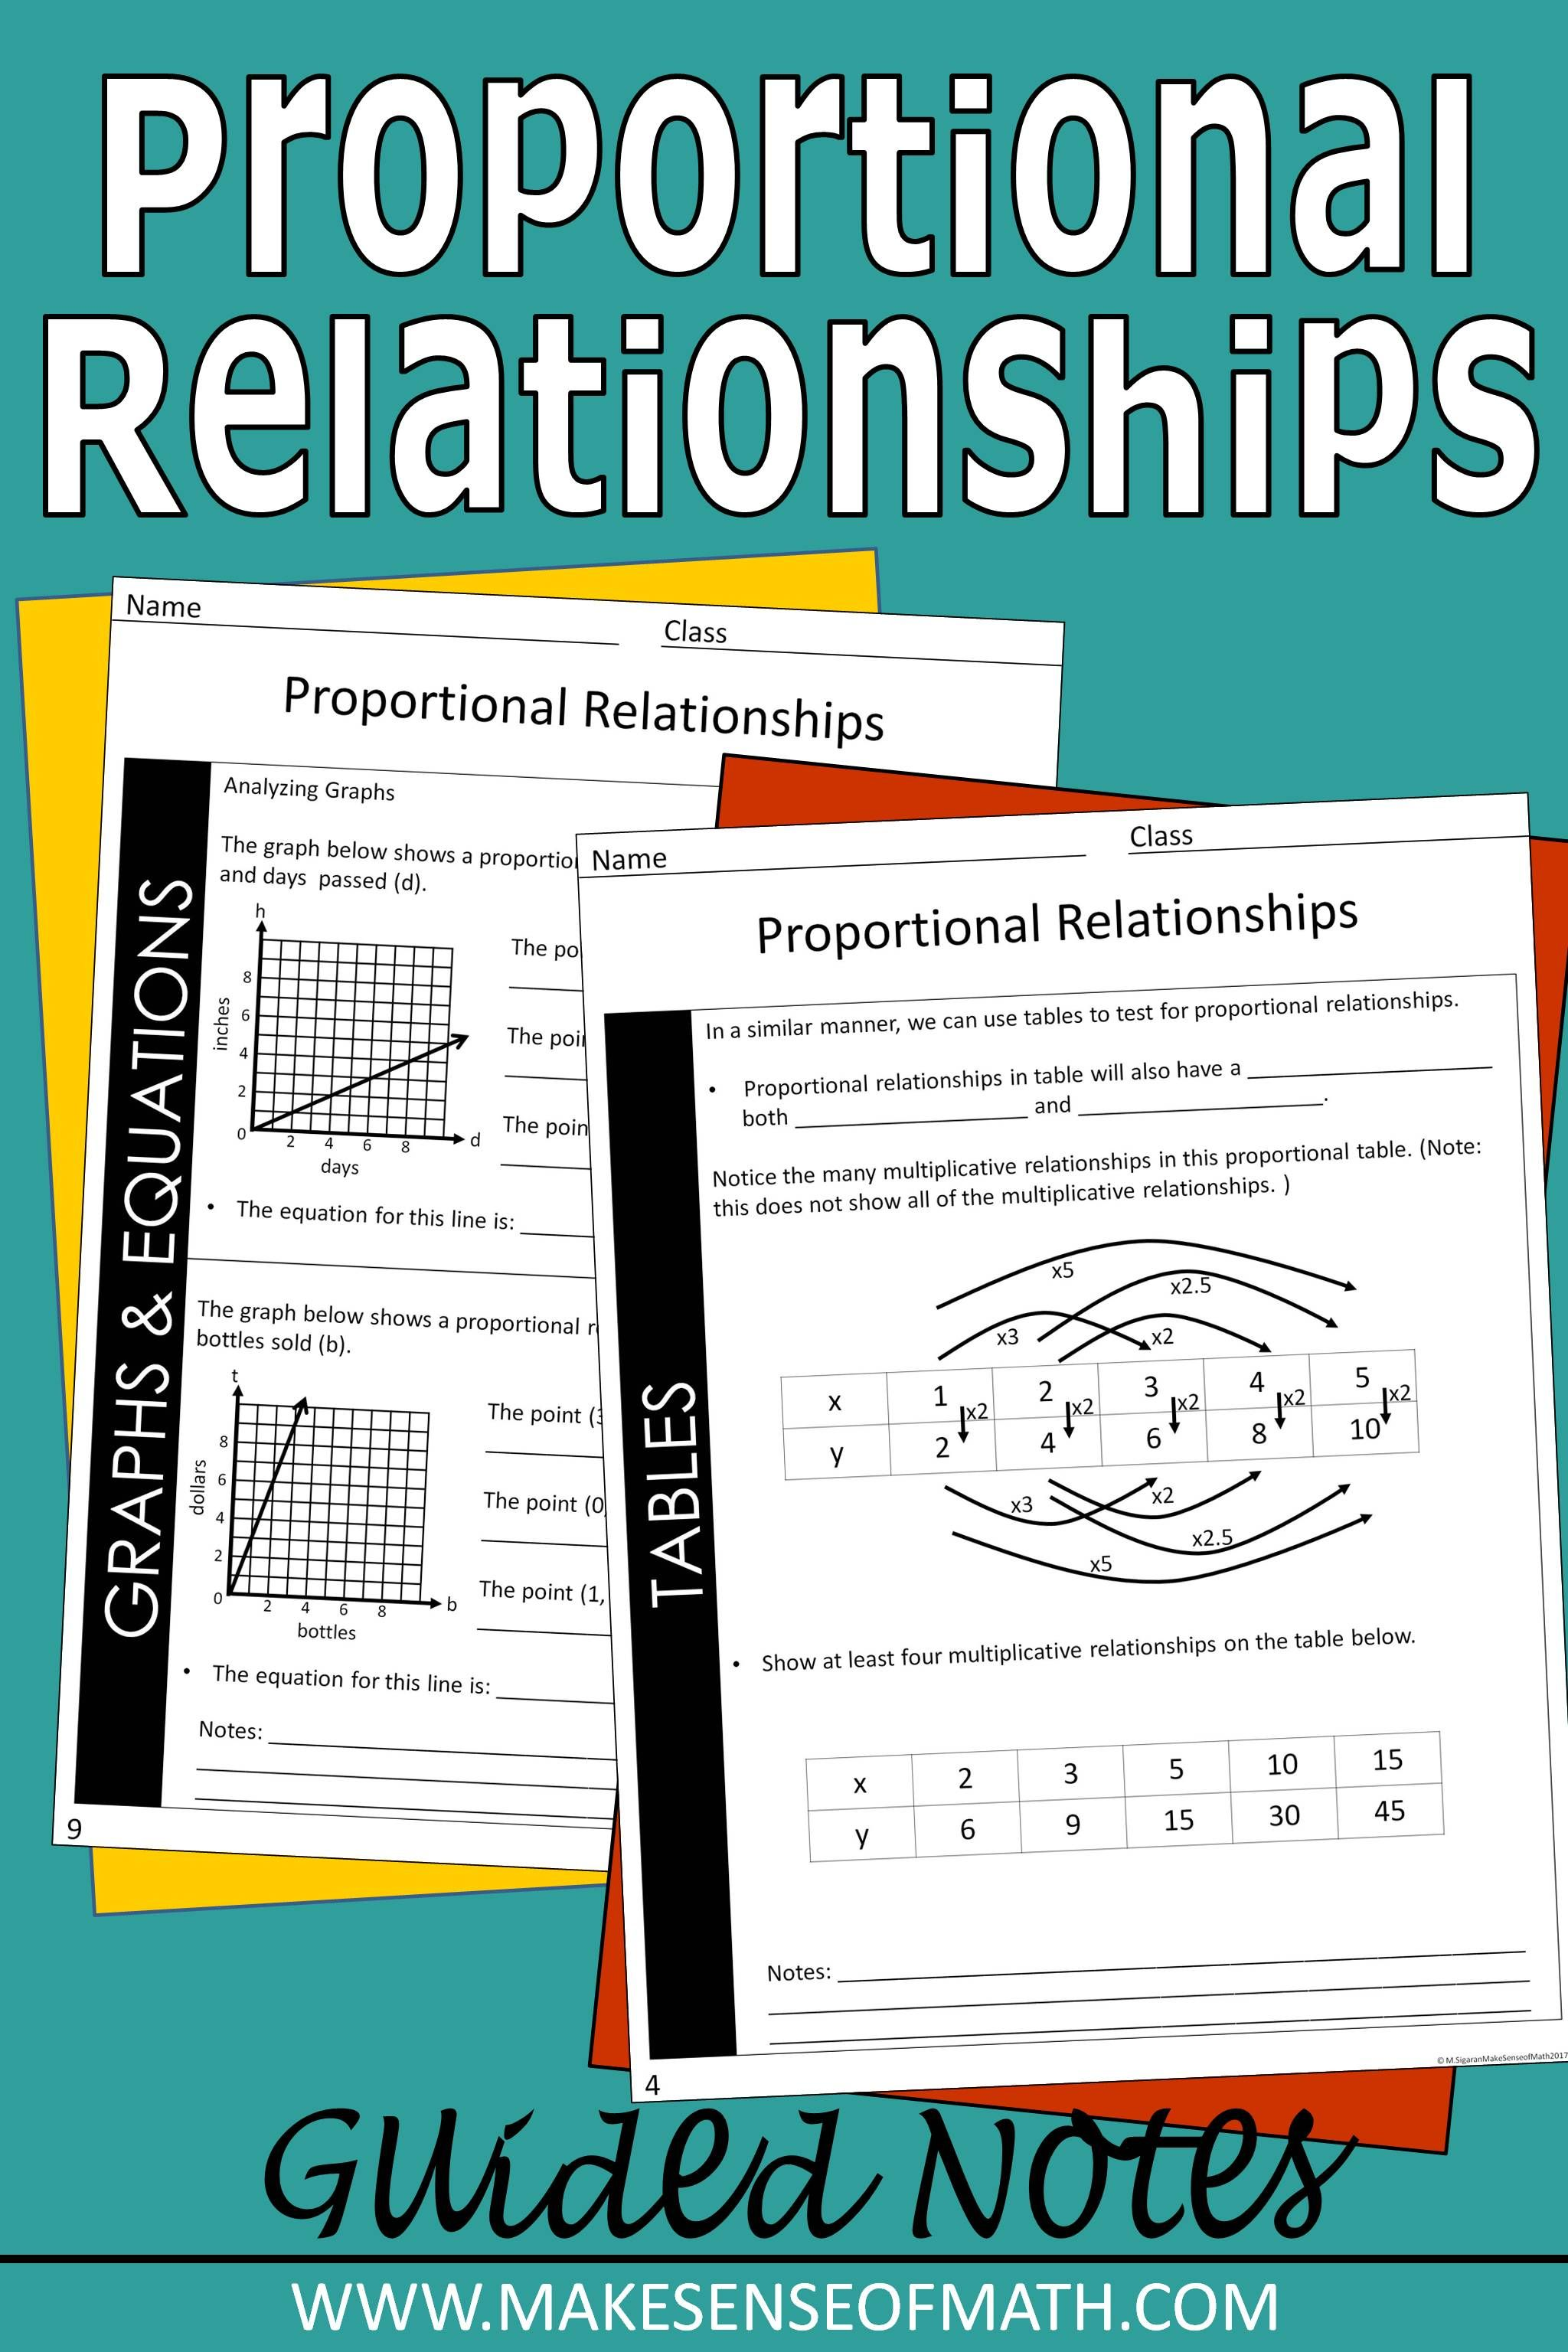 Proportional Relationships Guided Notes